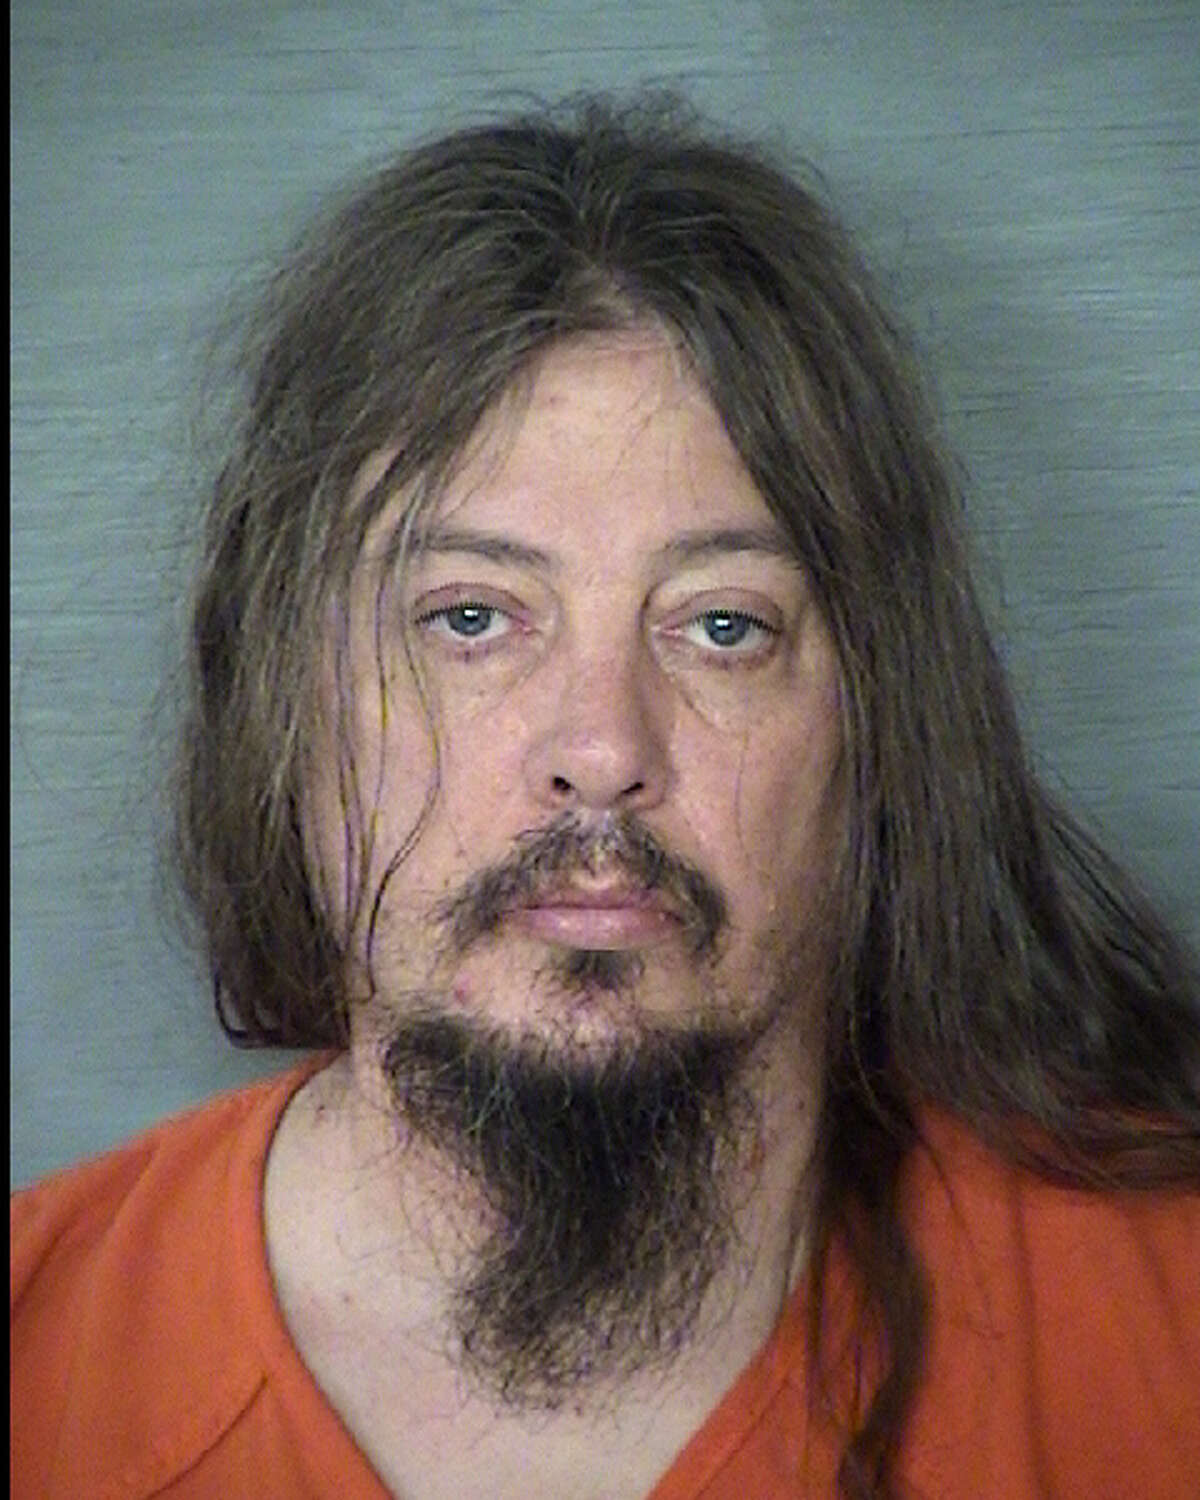 Danny Cejay Allen, 44, has been charged in connection to the fatal shooting of Thomas Cervantes Moreno, 72, San Antonio police said.